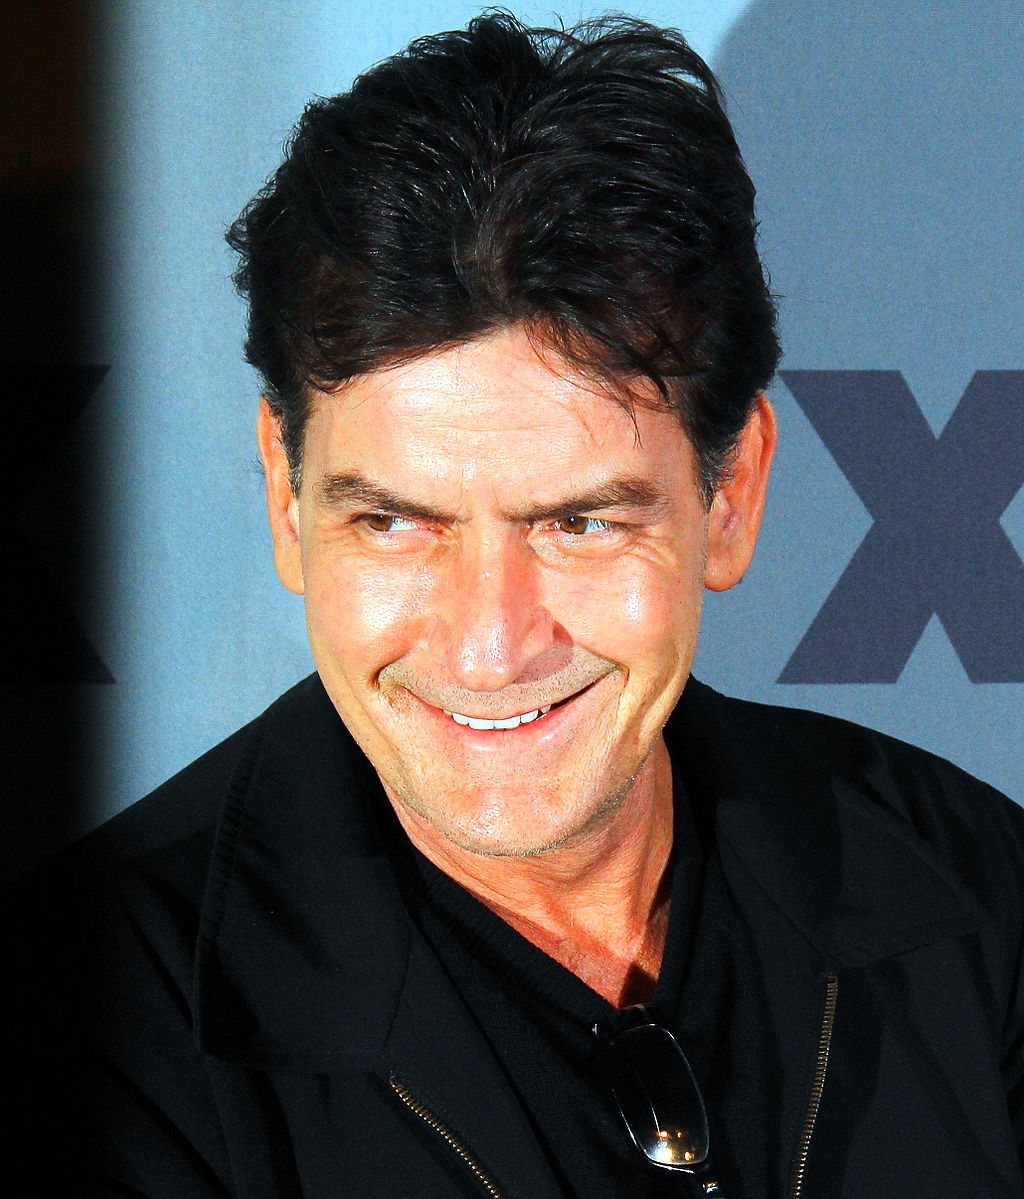 Charlie Sheen Source: Wikimedia Commons